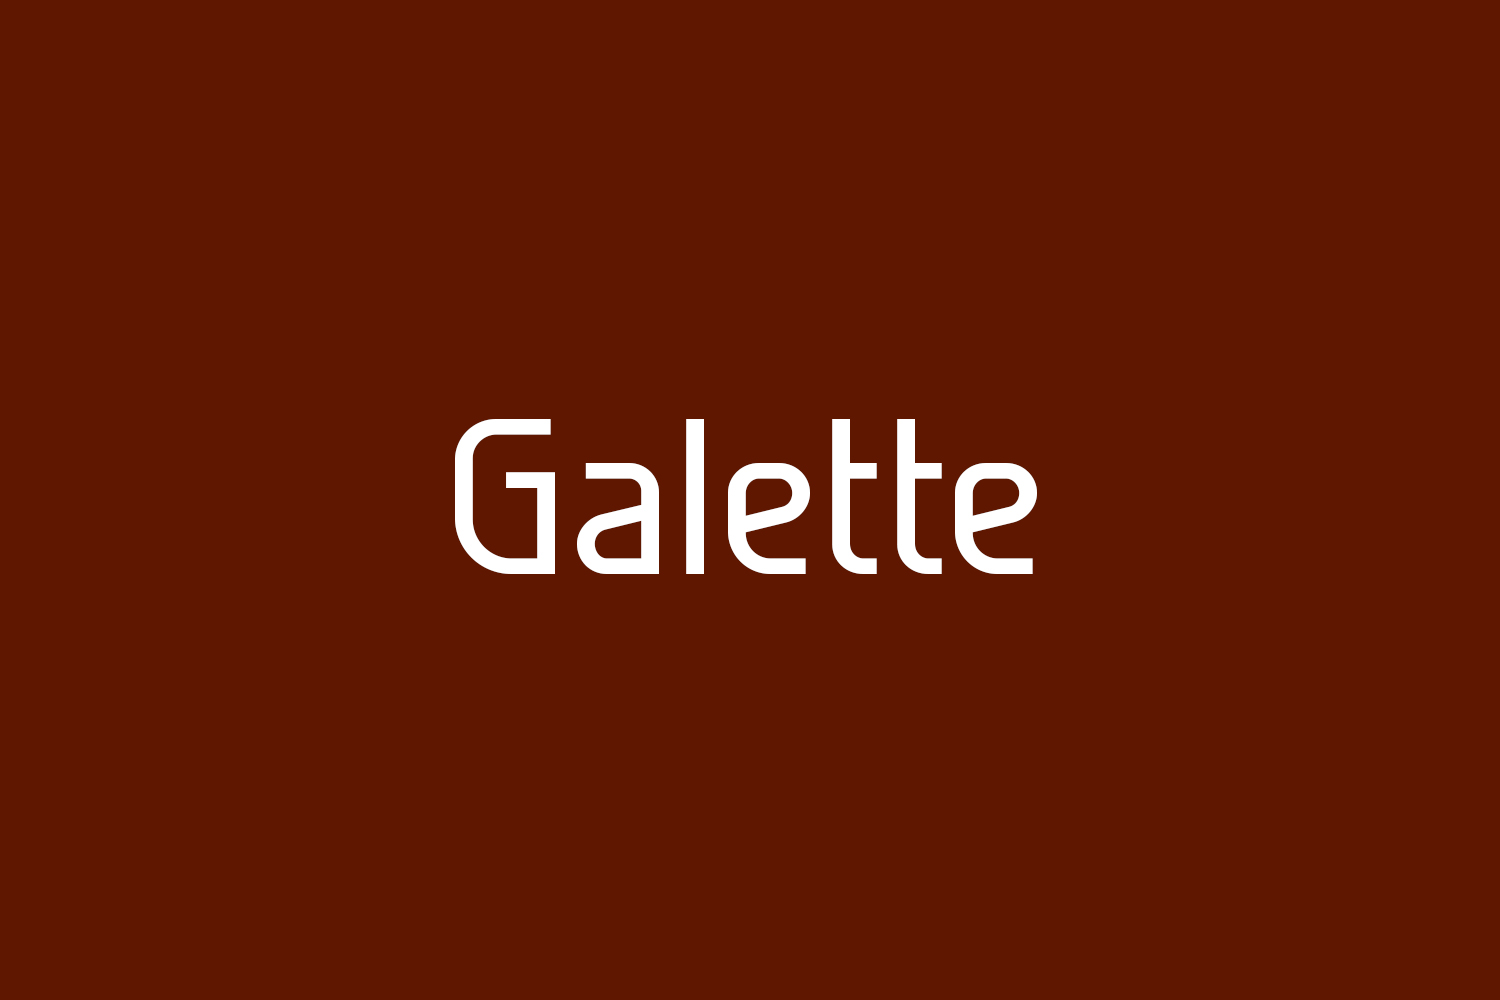 Galette Free Font